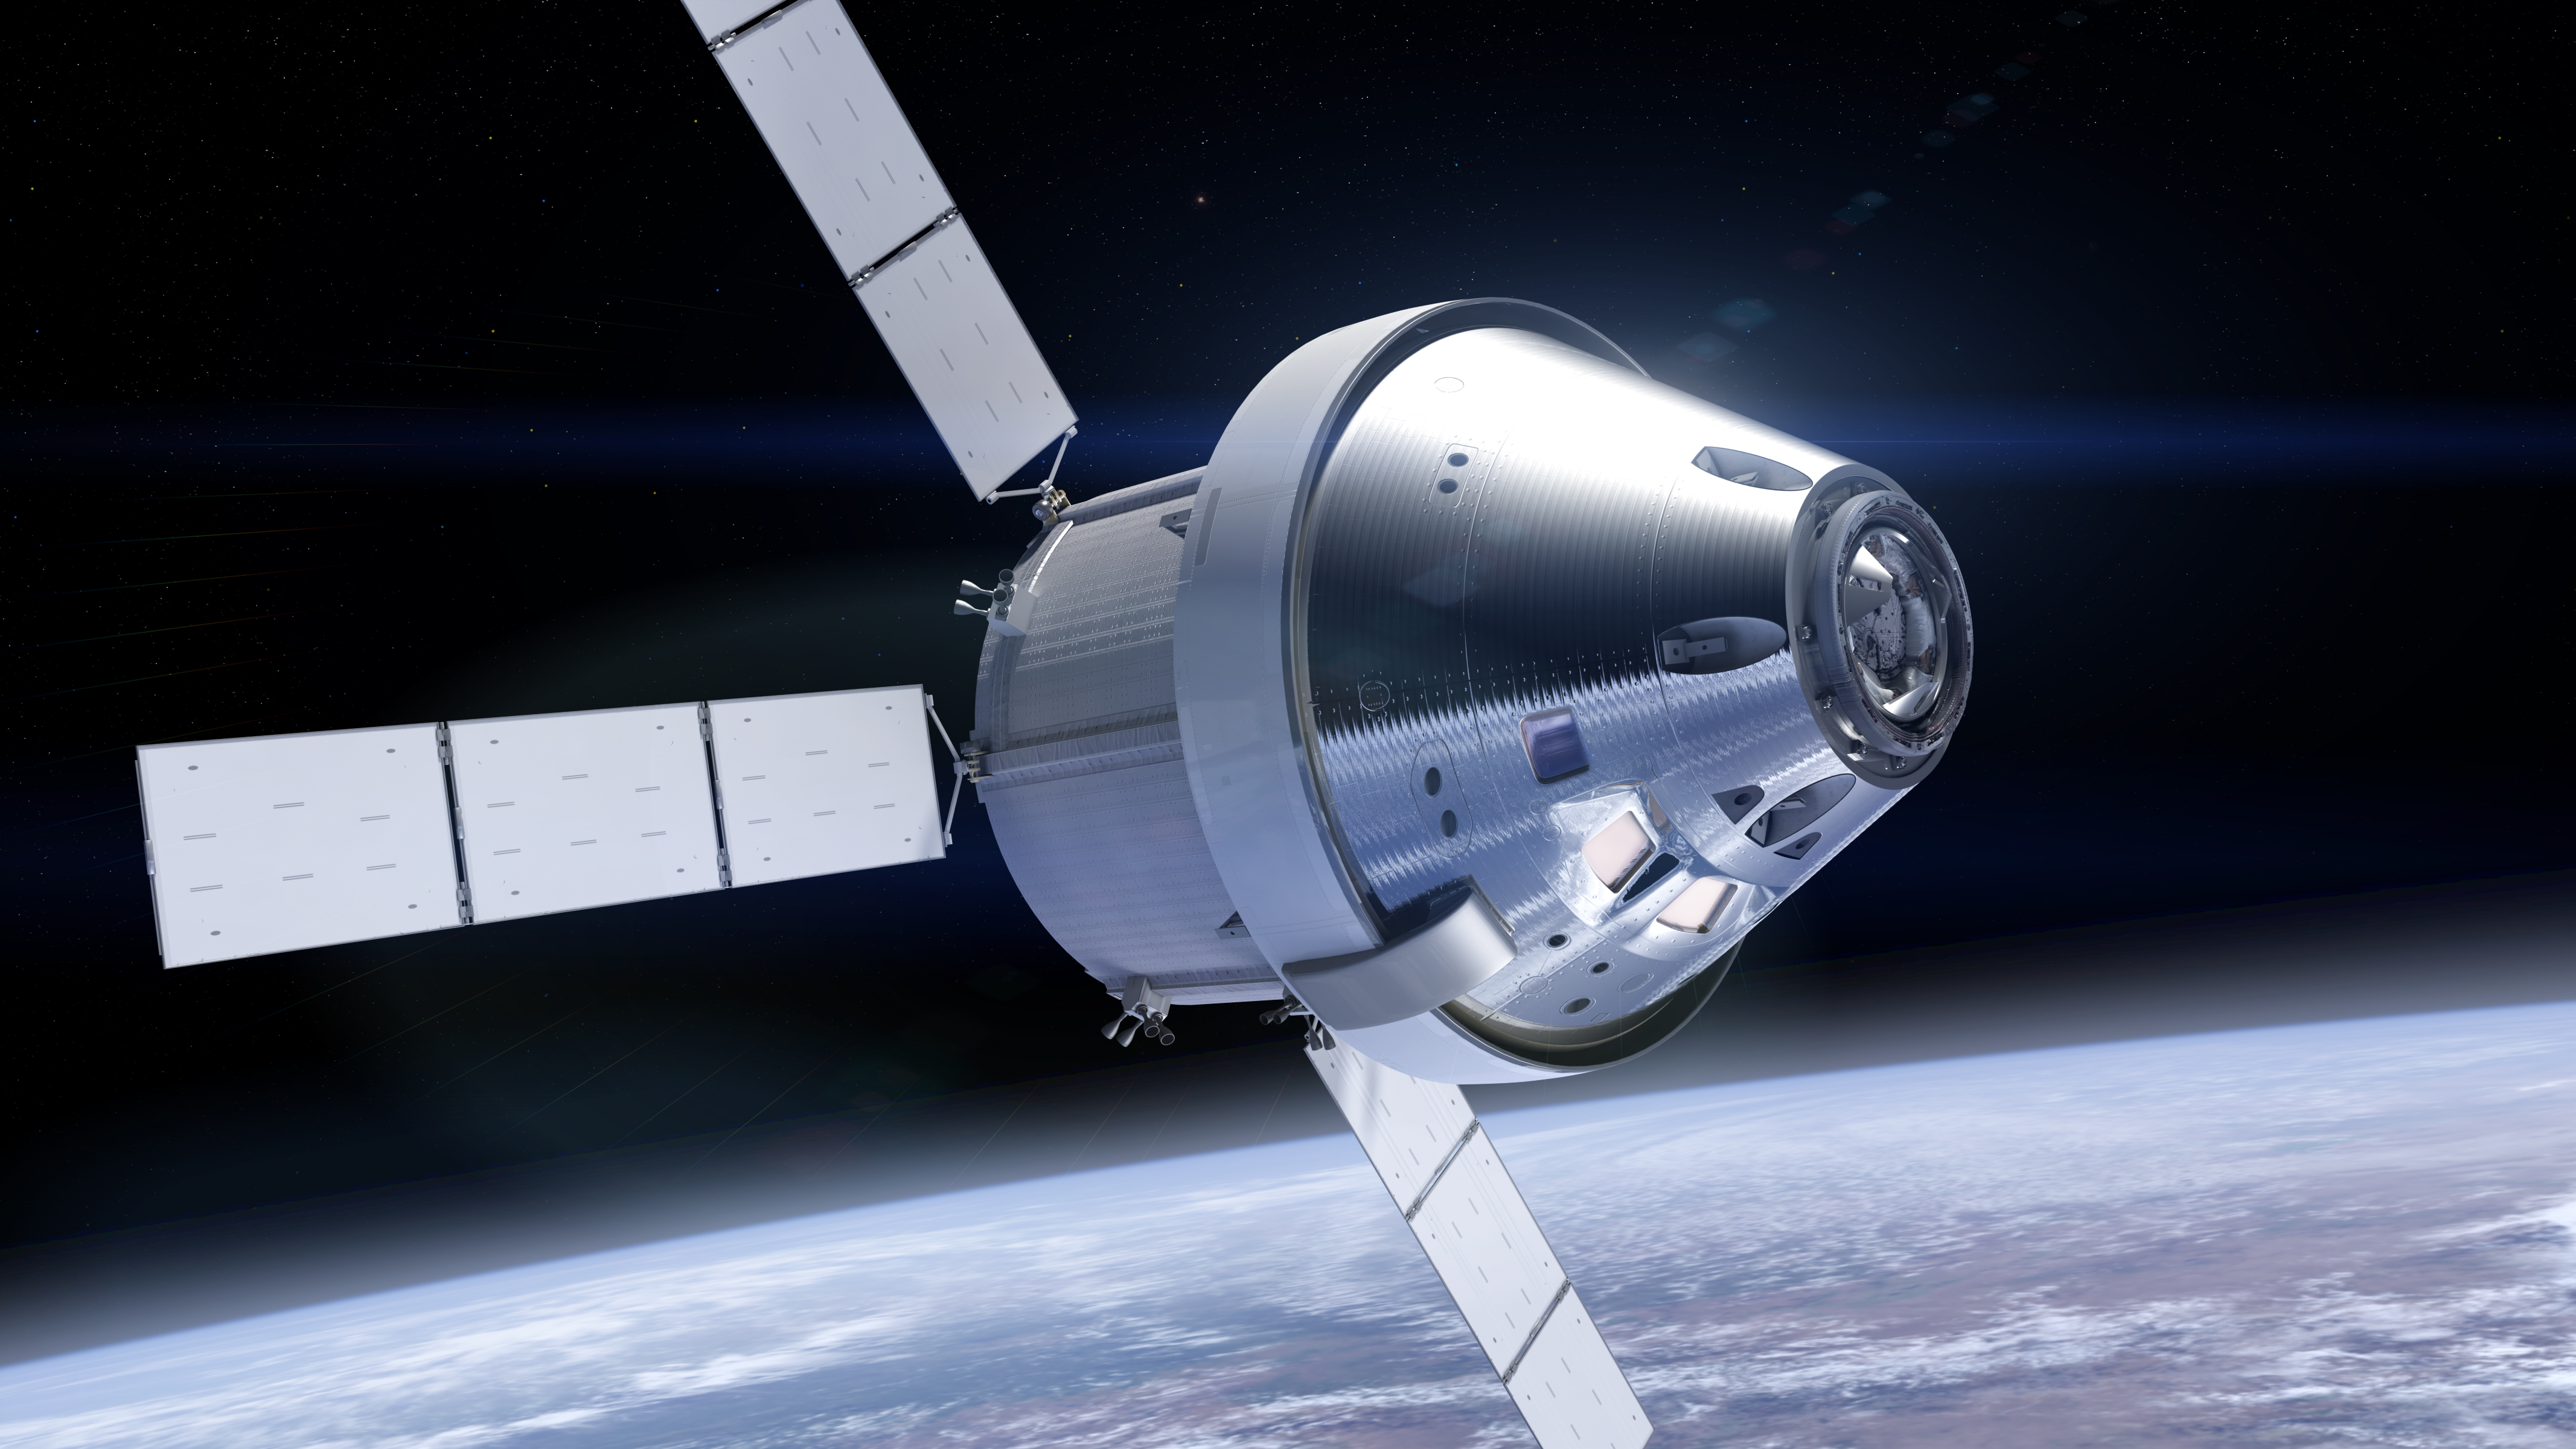 Orion Space Vehicle